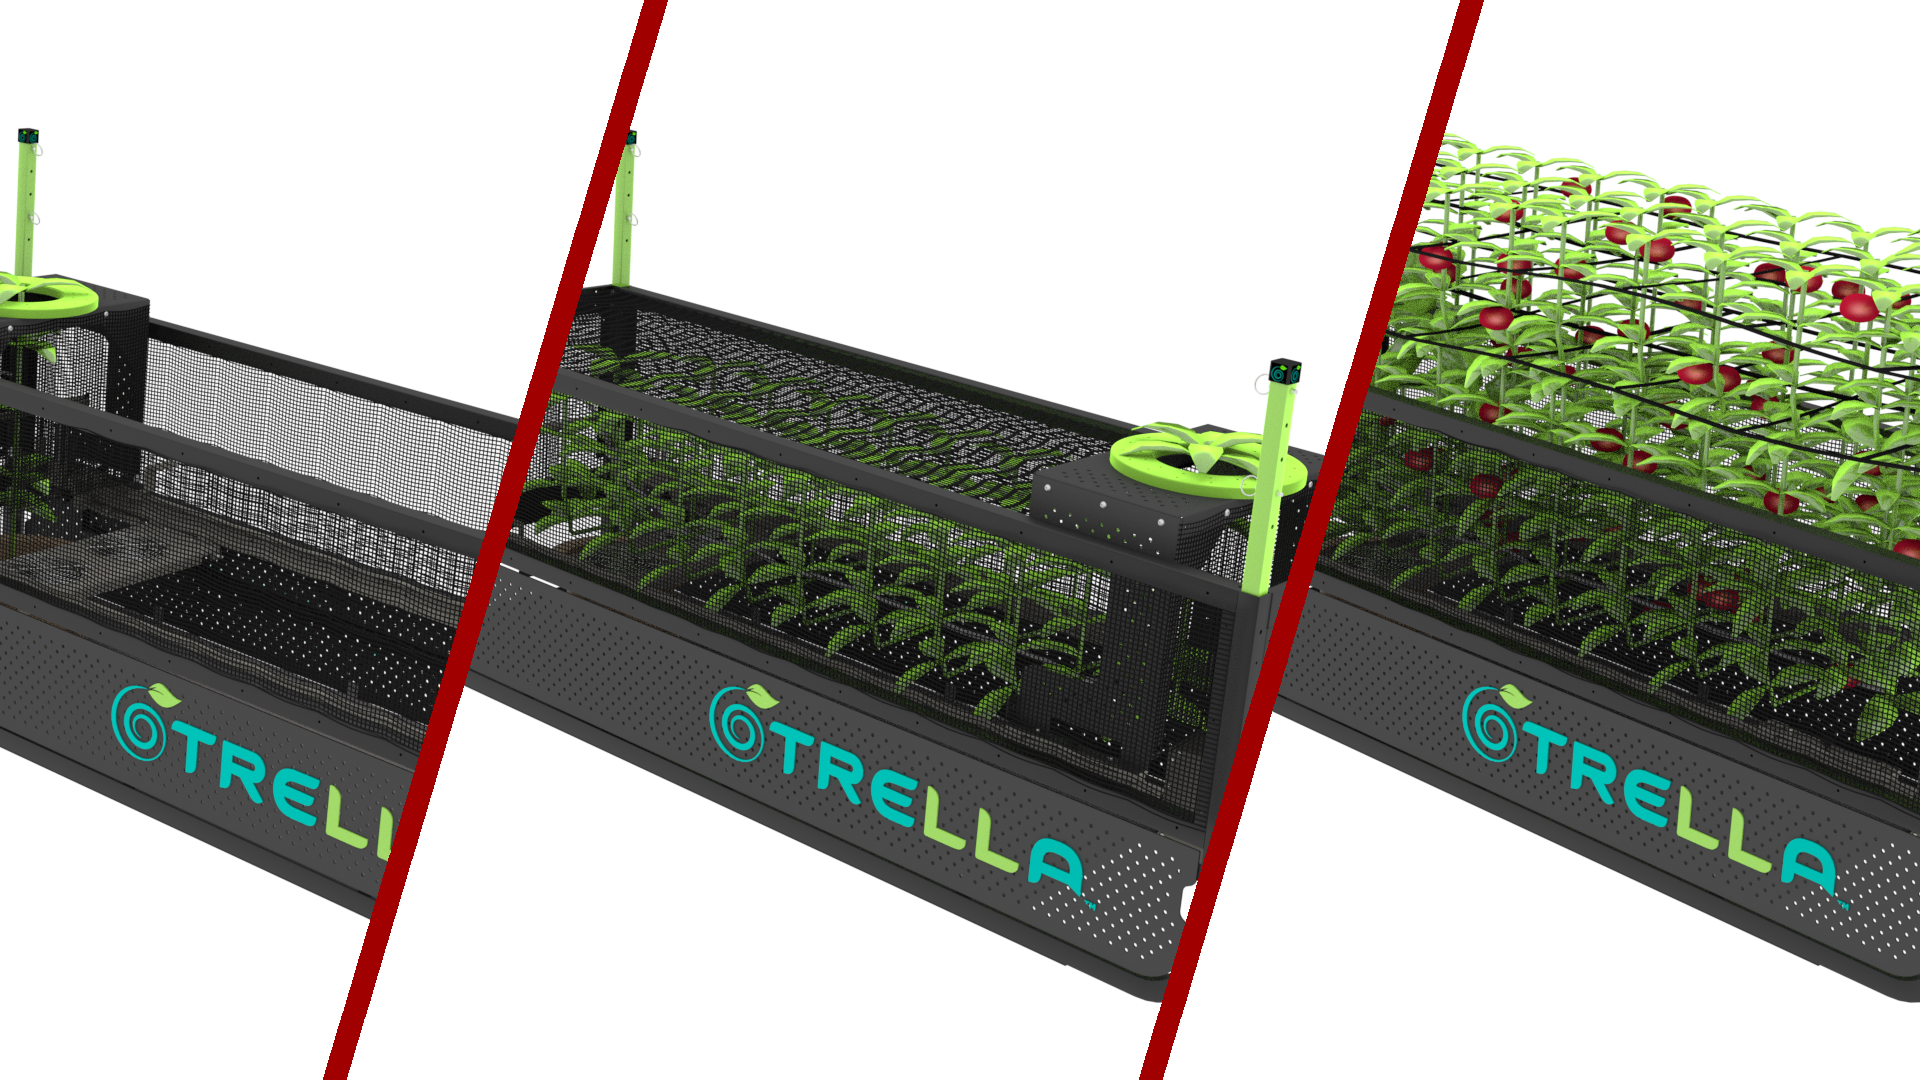 Trella Gro LST - Click here to see how we helped design an automated plant growing system for Trella Technologies